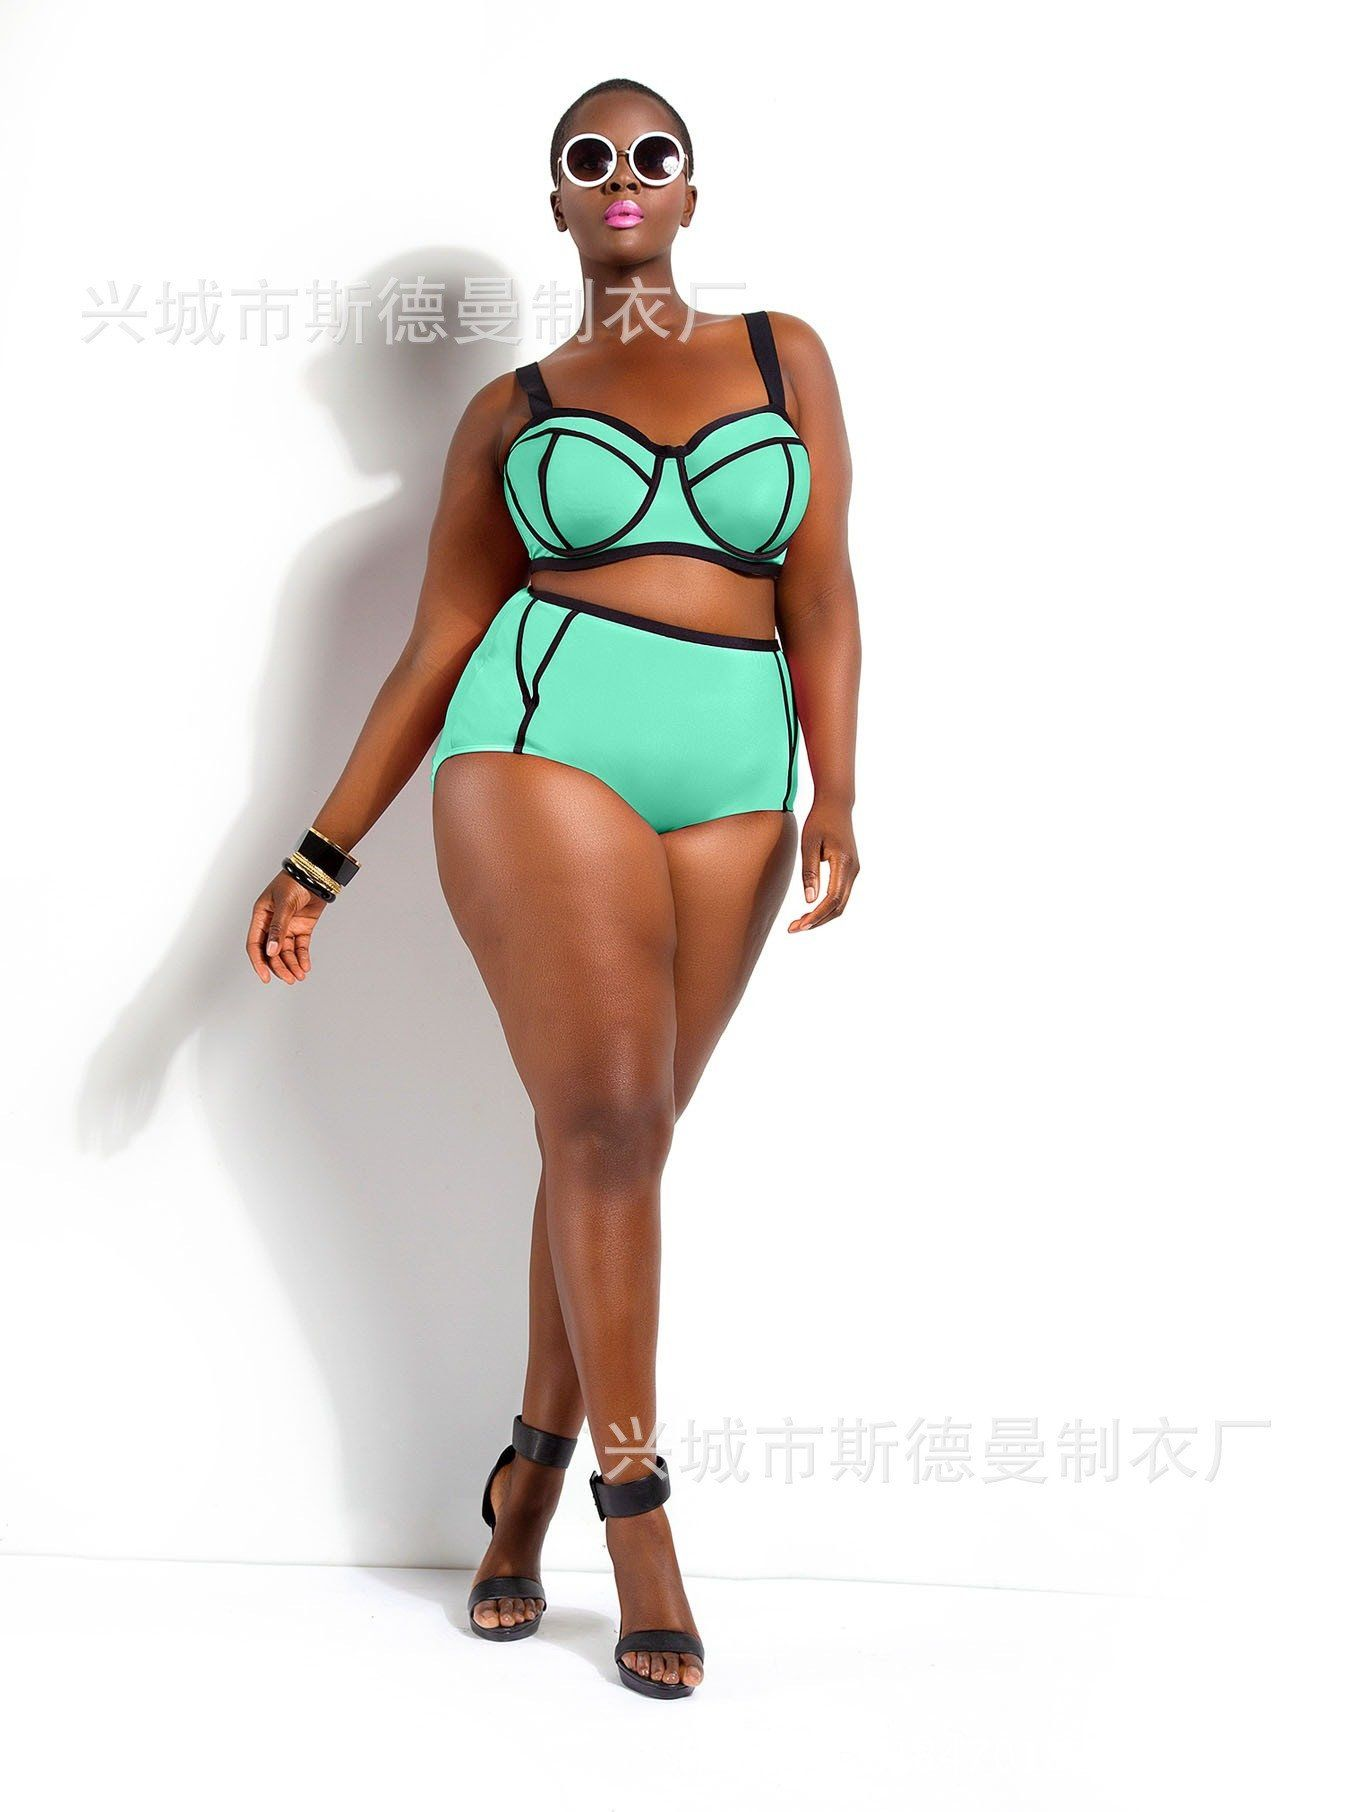 115adafc76 Two Piece Plus Size Bikini Set Summer Hot Swimwear Sexy Push Up Paded  Swimsuit for Fat Women